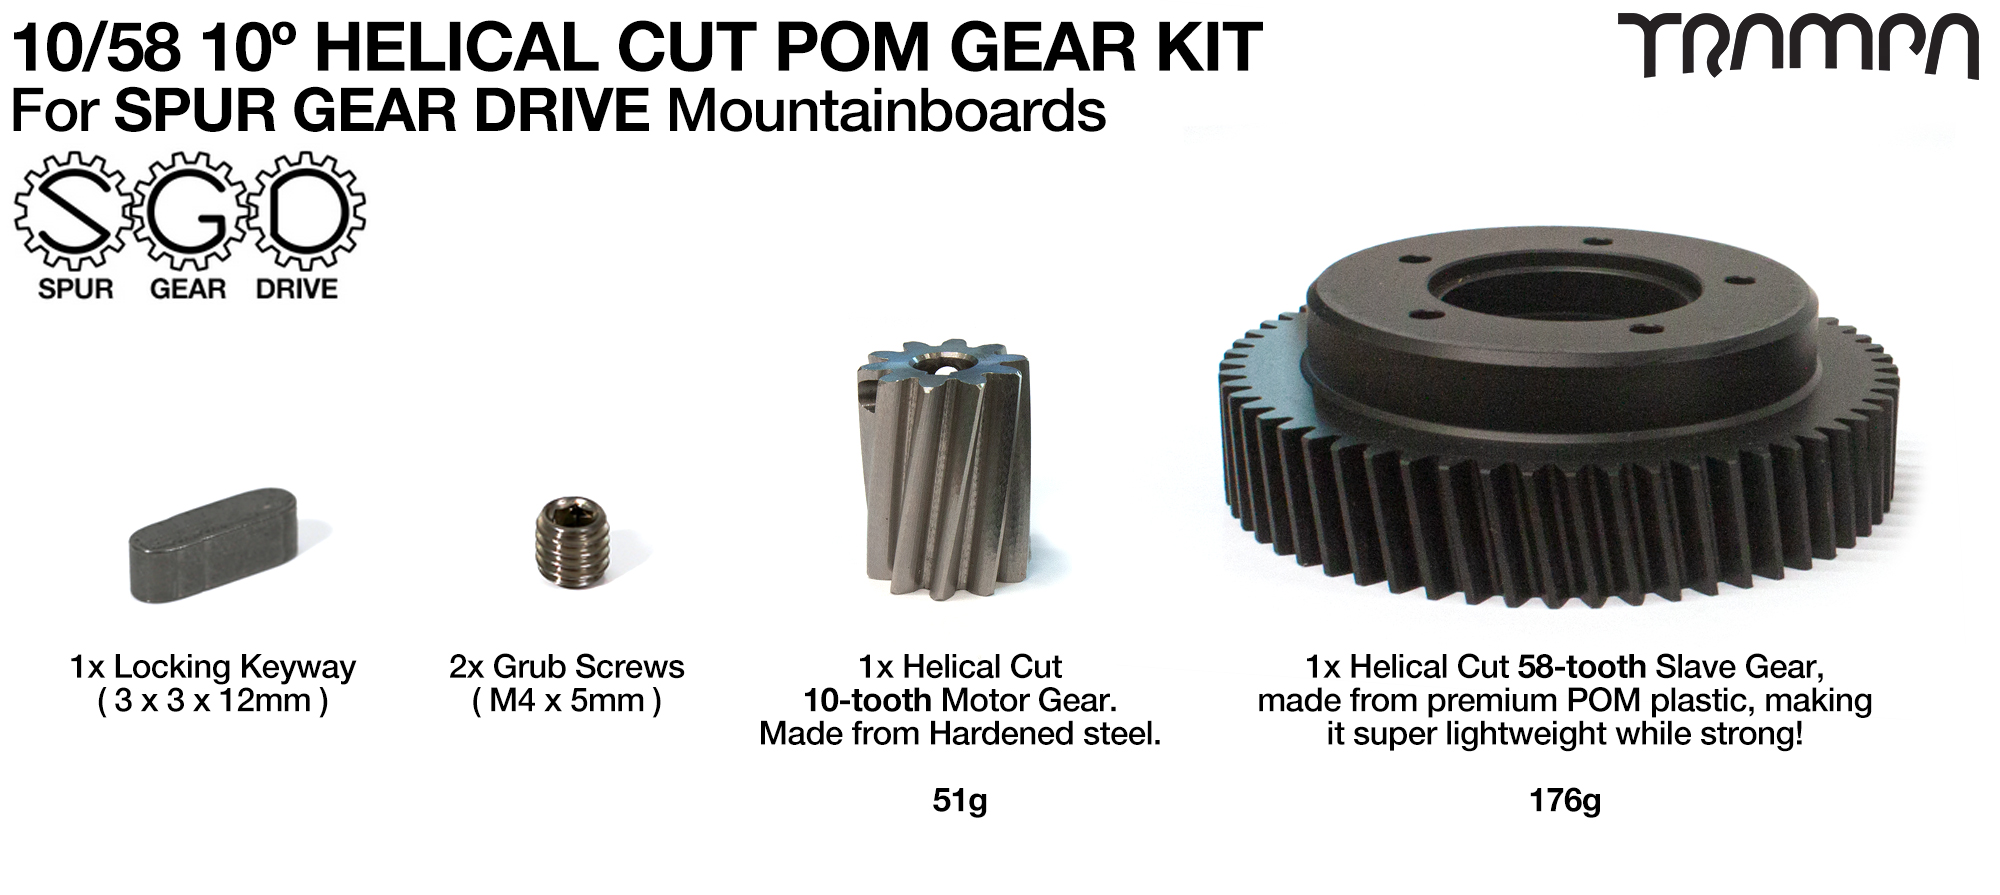 Original Spur Gear Drive 10/58 10º HELICAL POM Pulley Kit fits to SUPERSTAR PHATLADS or MEGASTARS